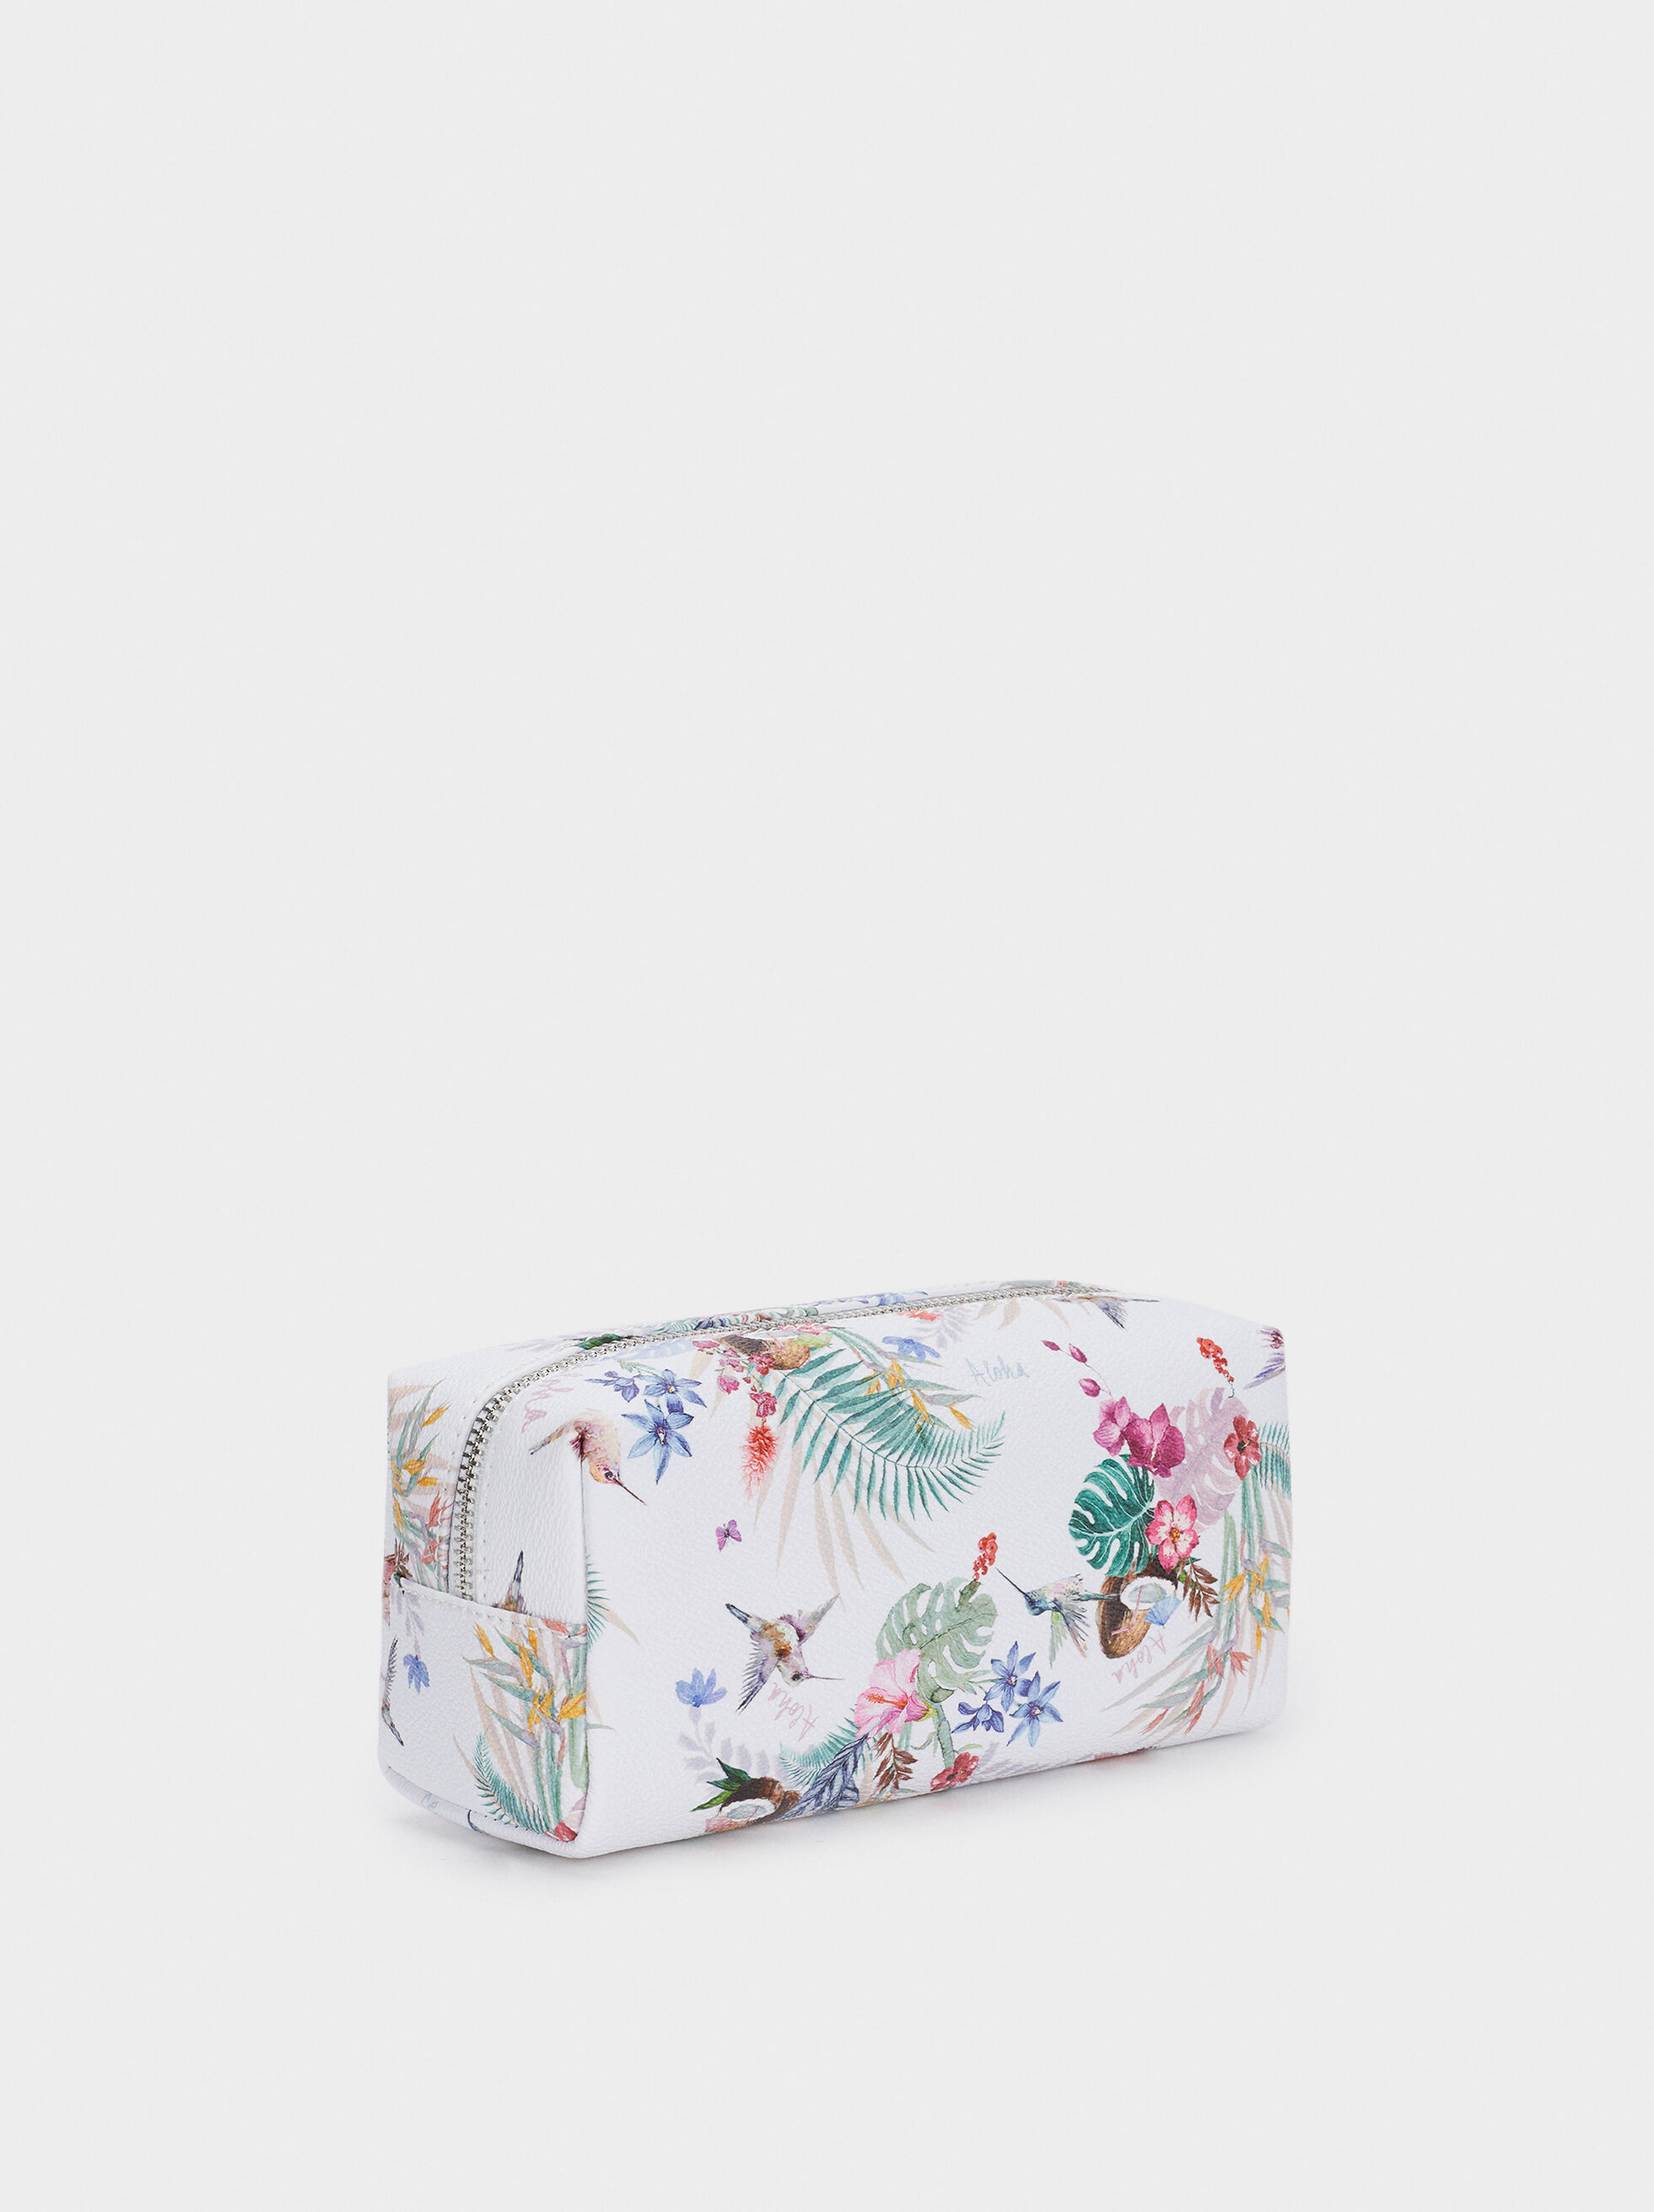 Zipped Pencil Case With Floral Print, Ecru, hi-res